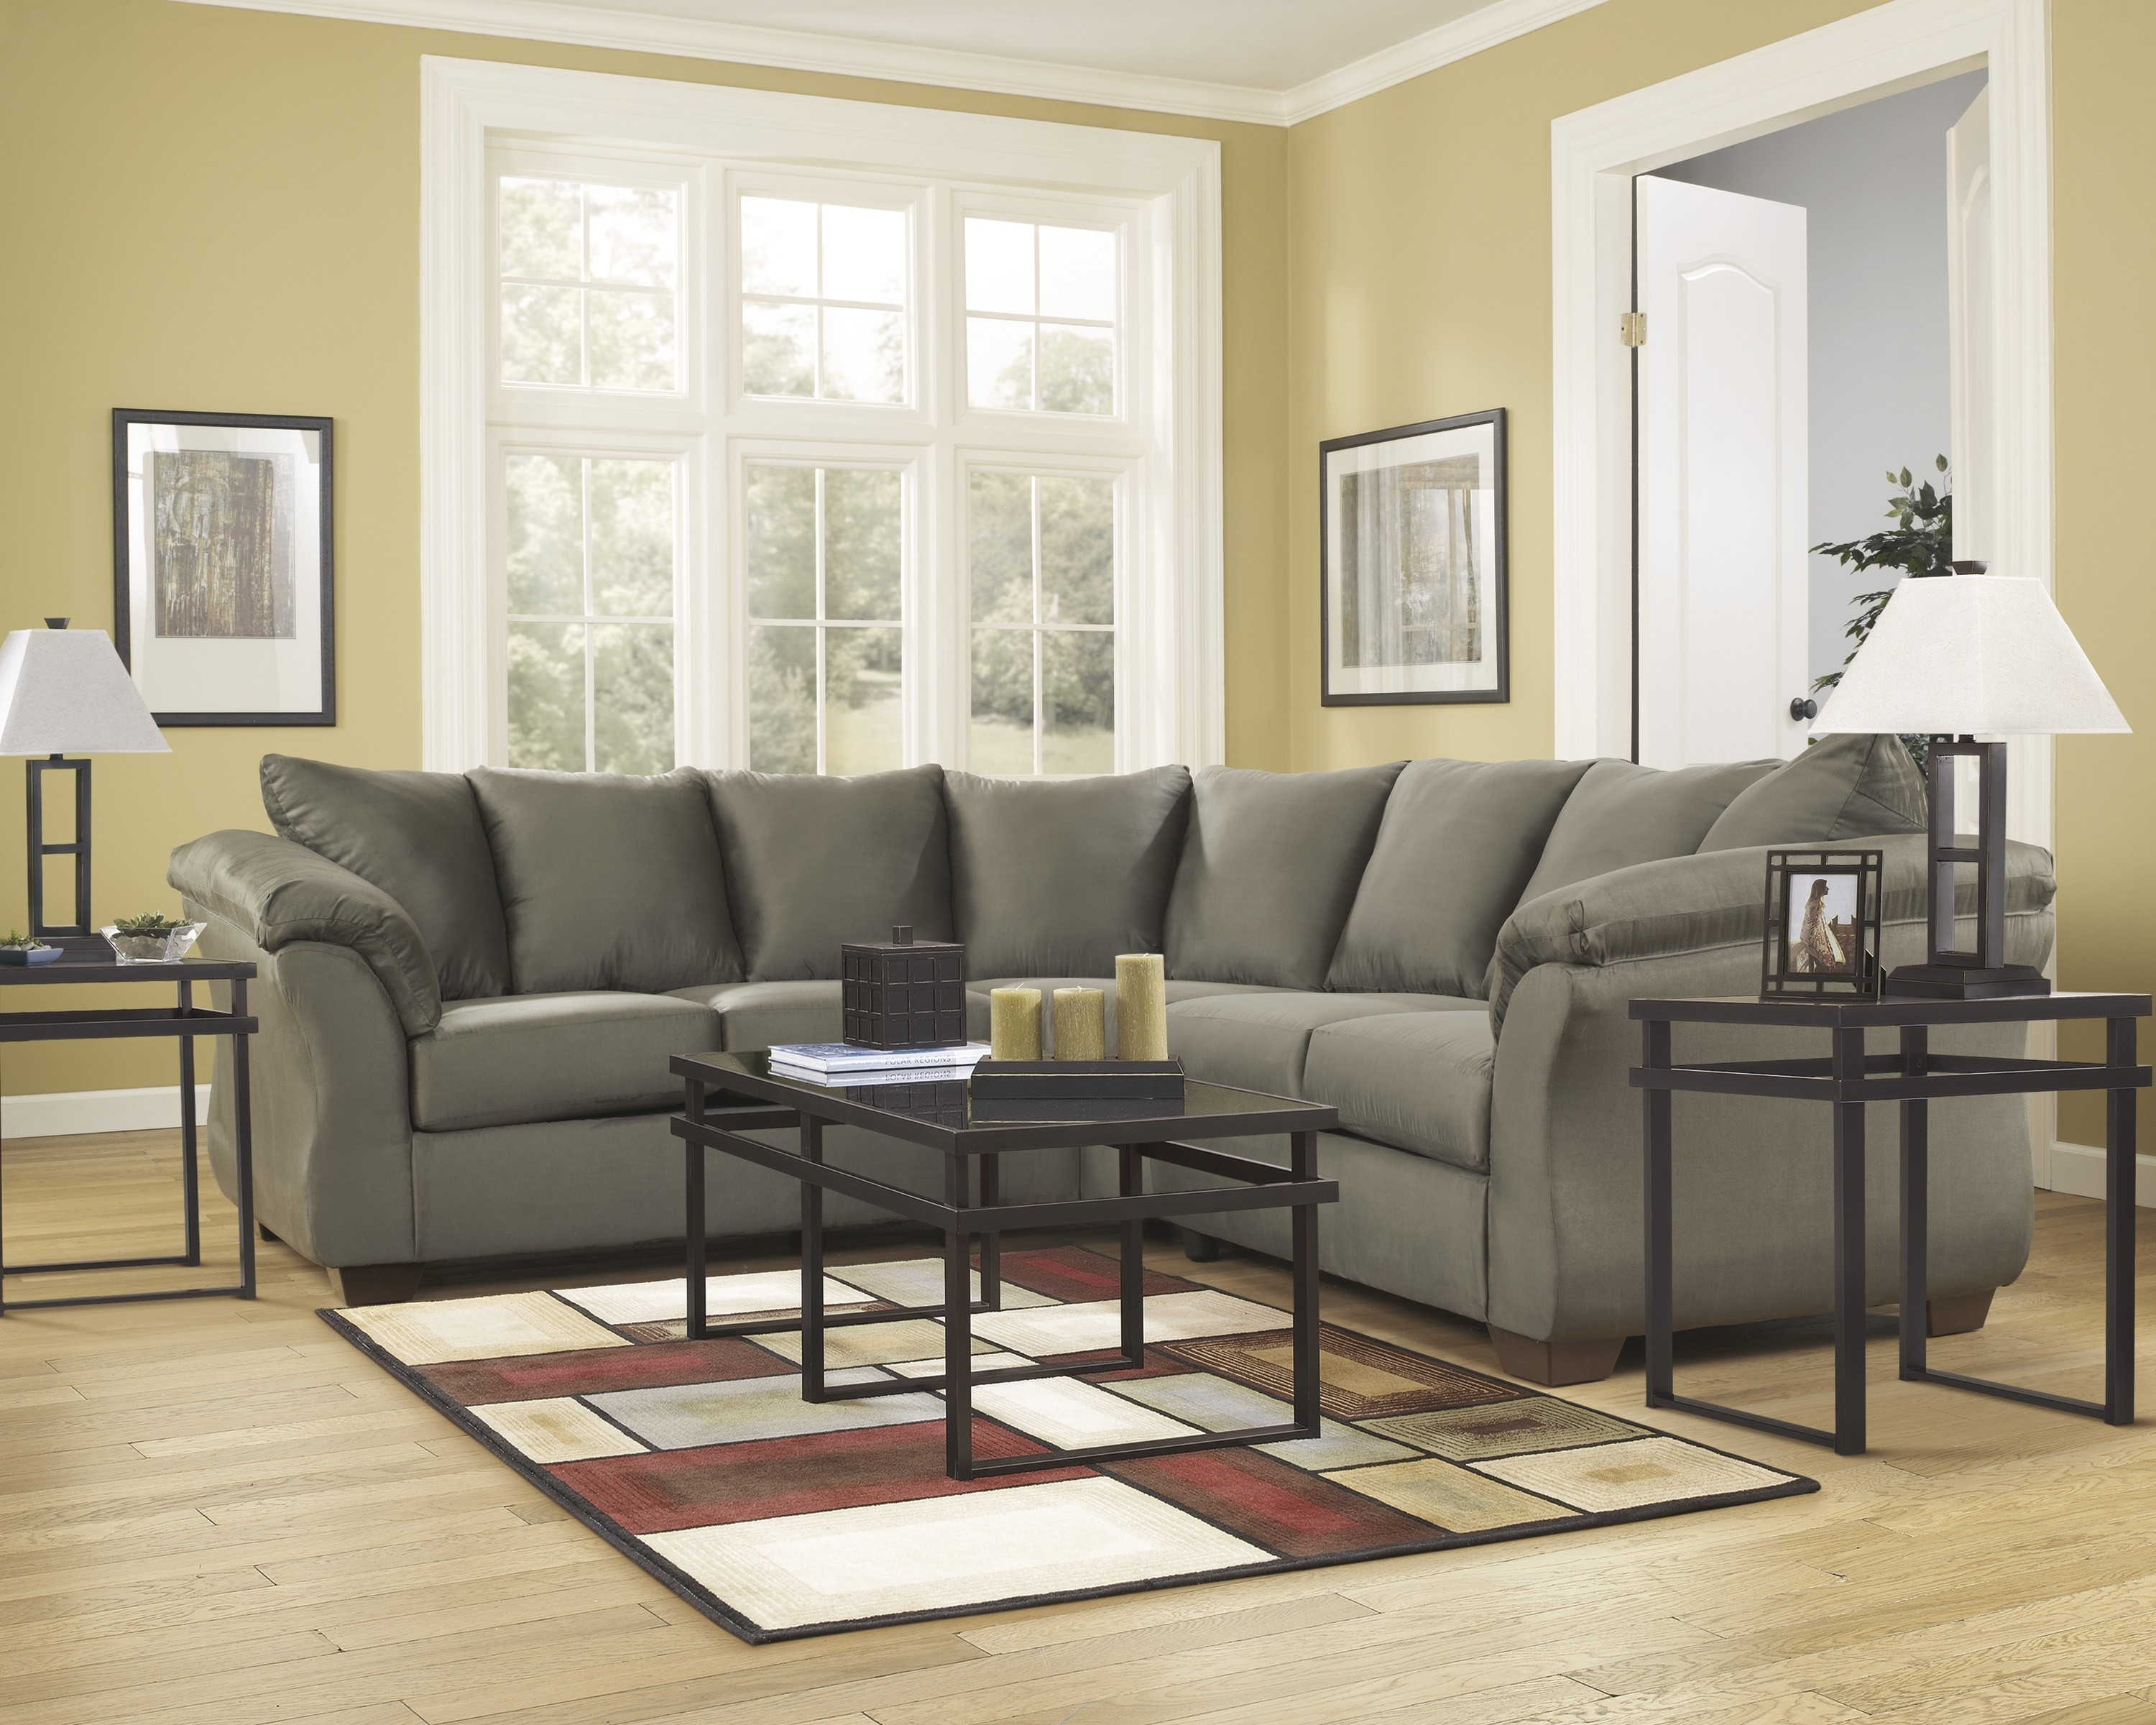 12 Best Ideas Of 3 Piece Sectional Sofa Slipcovers